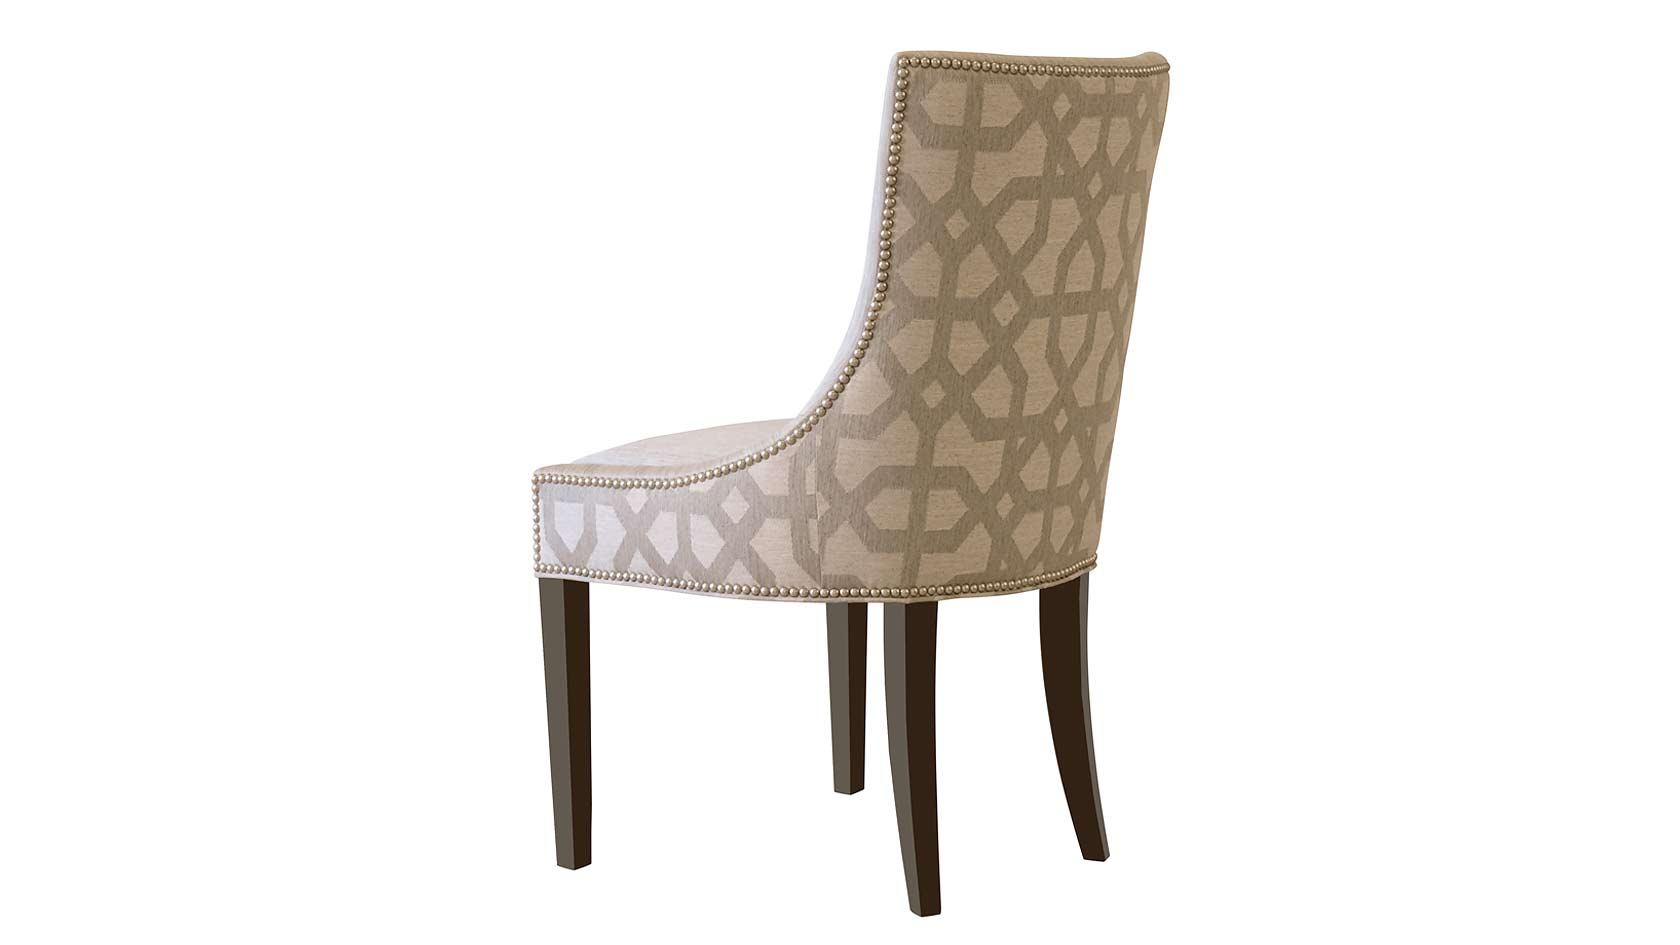 Plush Home park avenue dining chair : Park Ave Chair Rear Angle from plushhome.com size 1680 x 945 jpeg 48kB